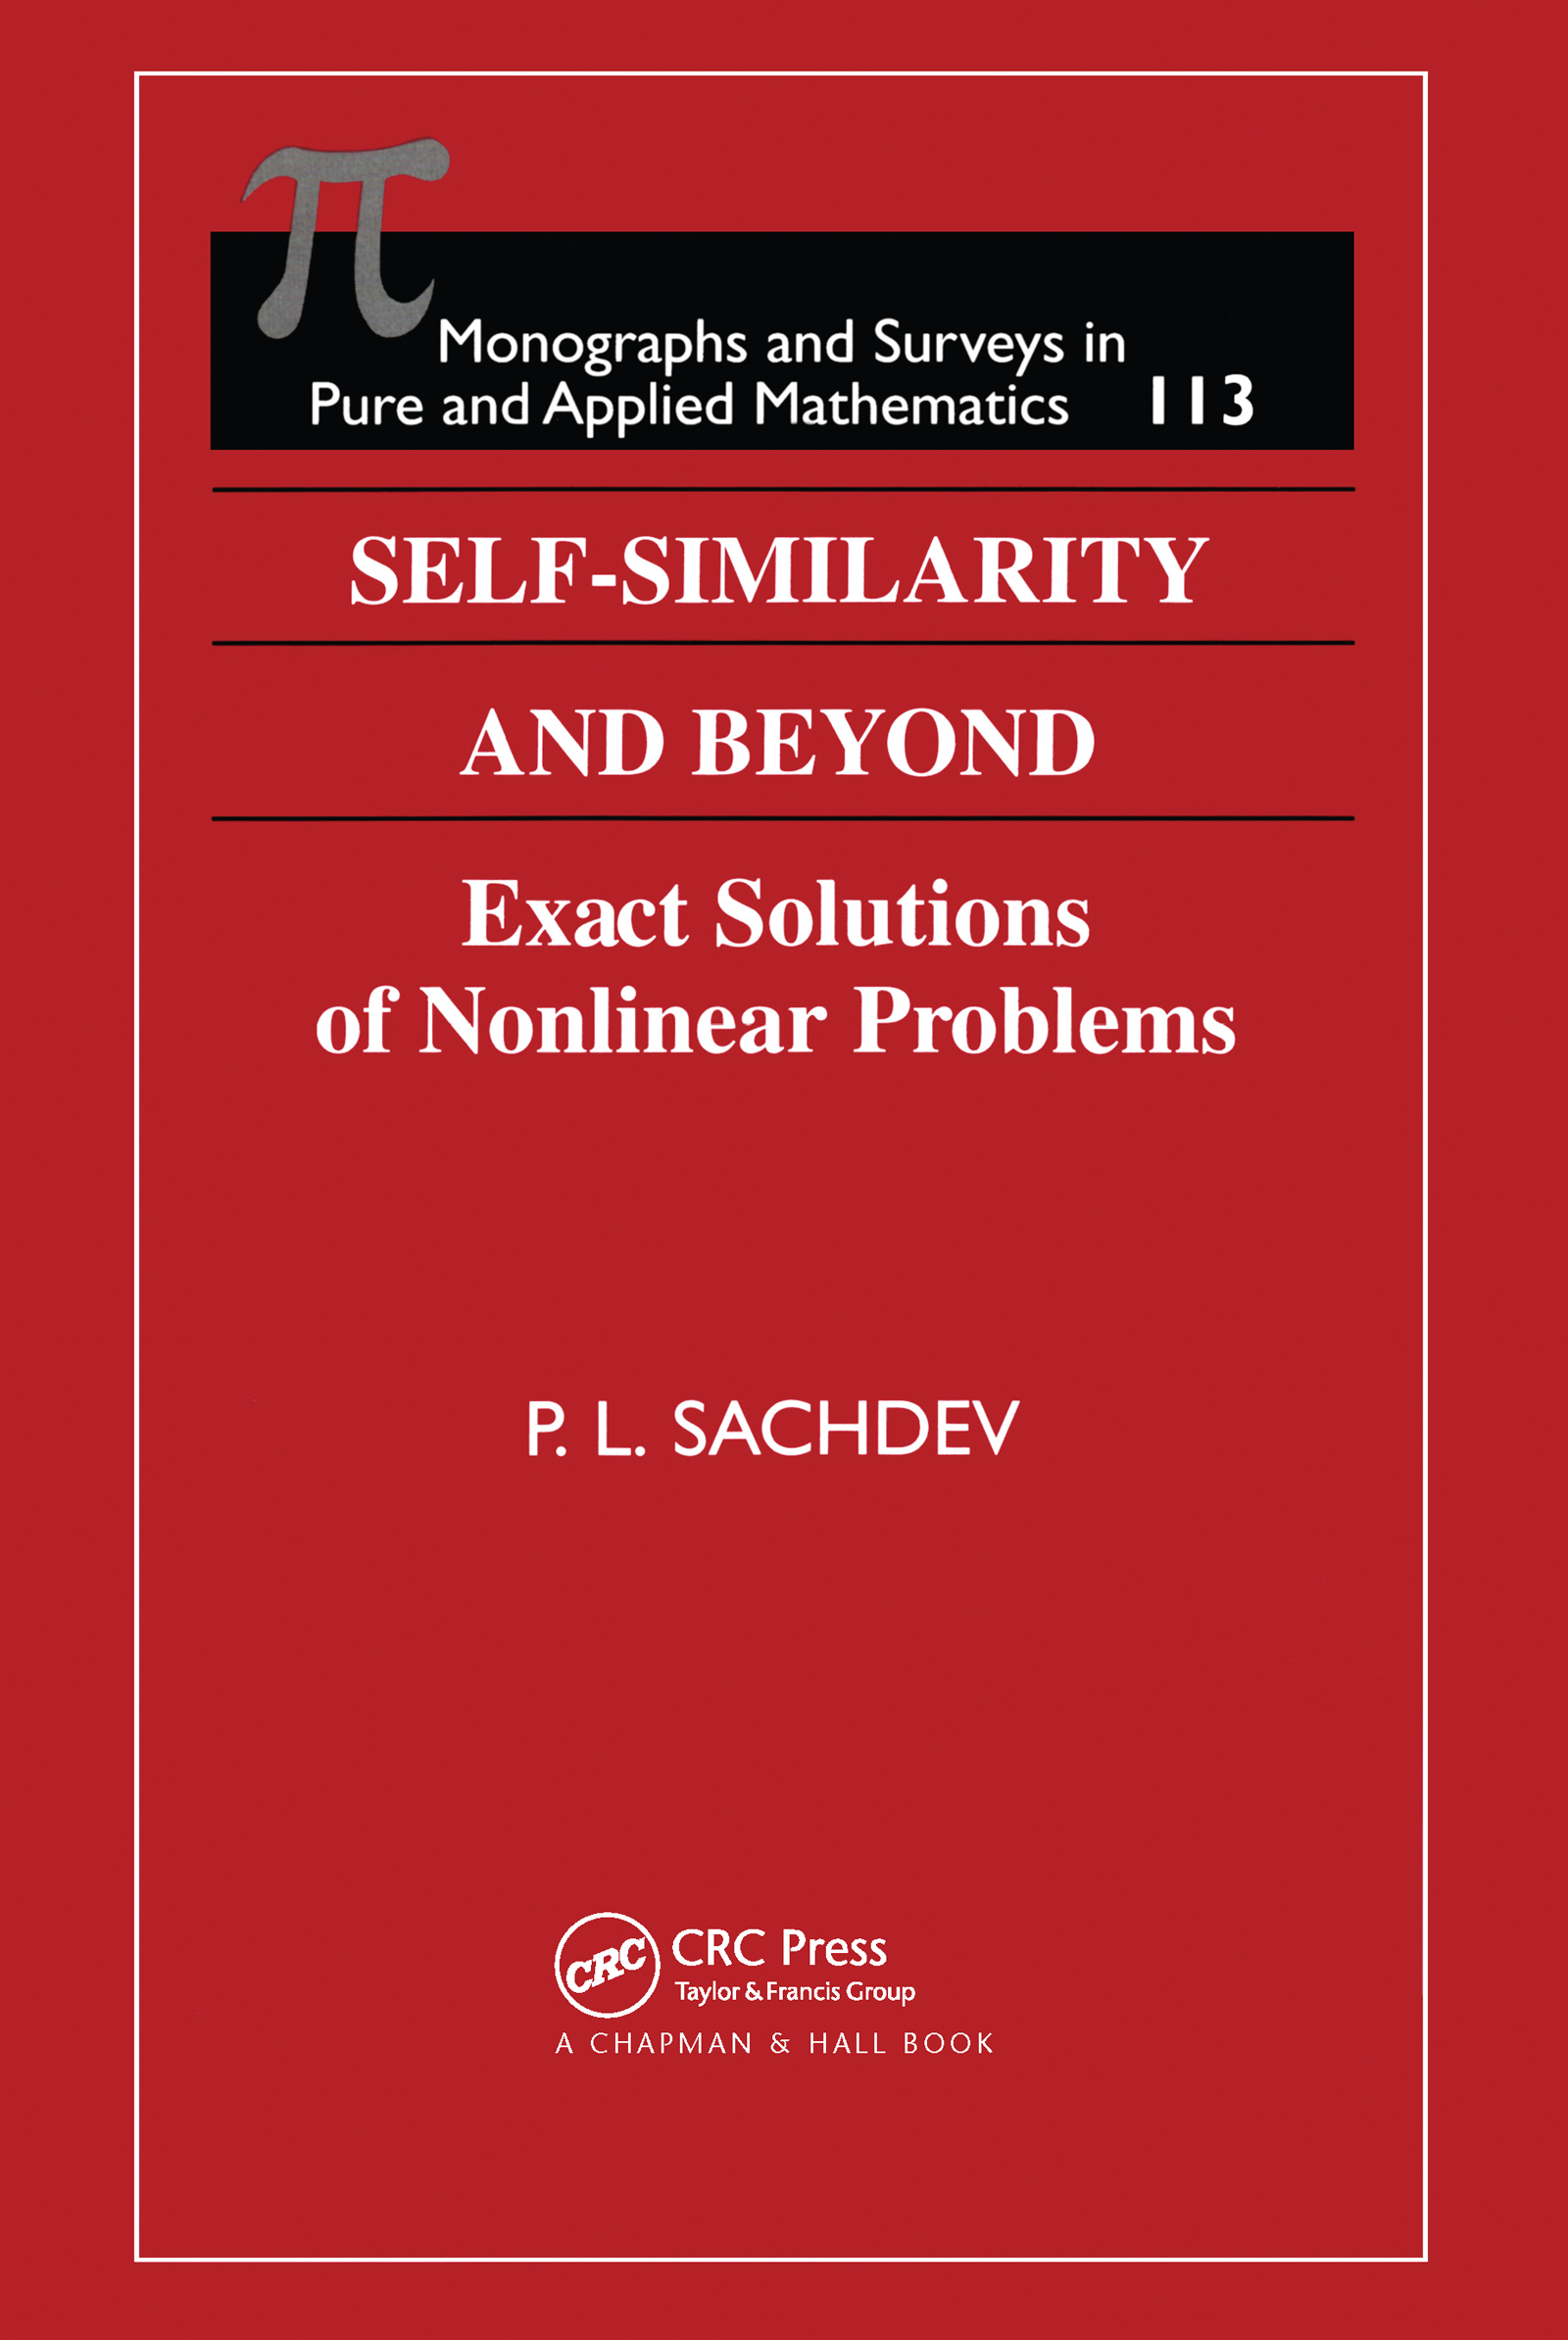 Self-Similarity and Beyond